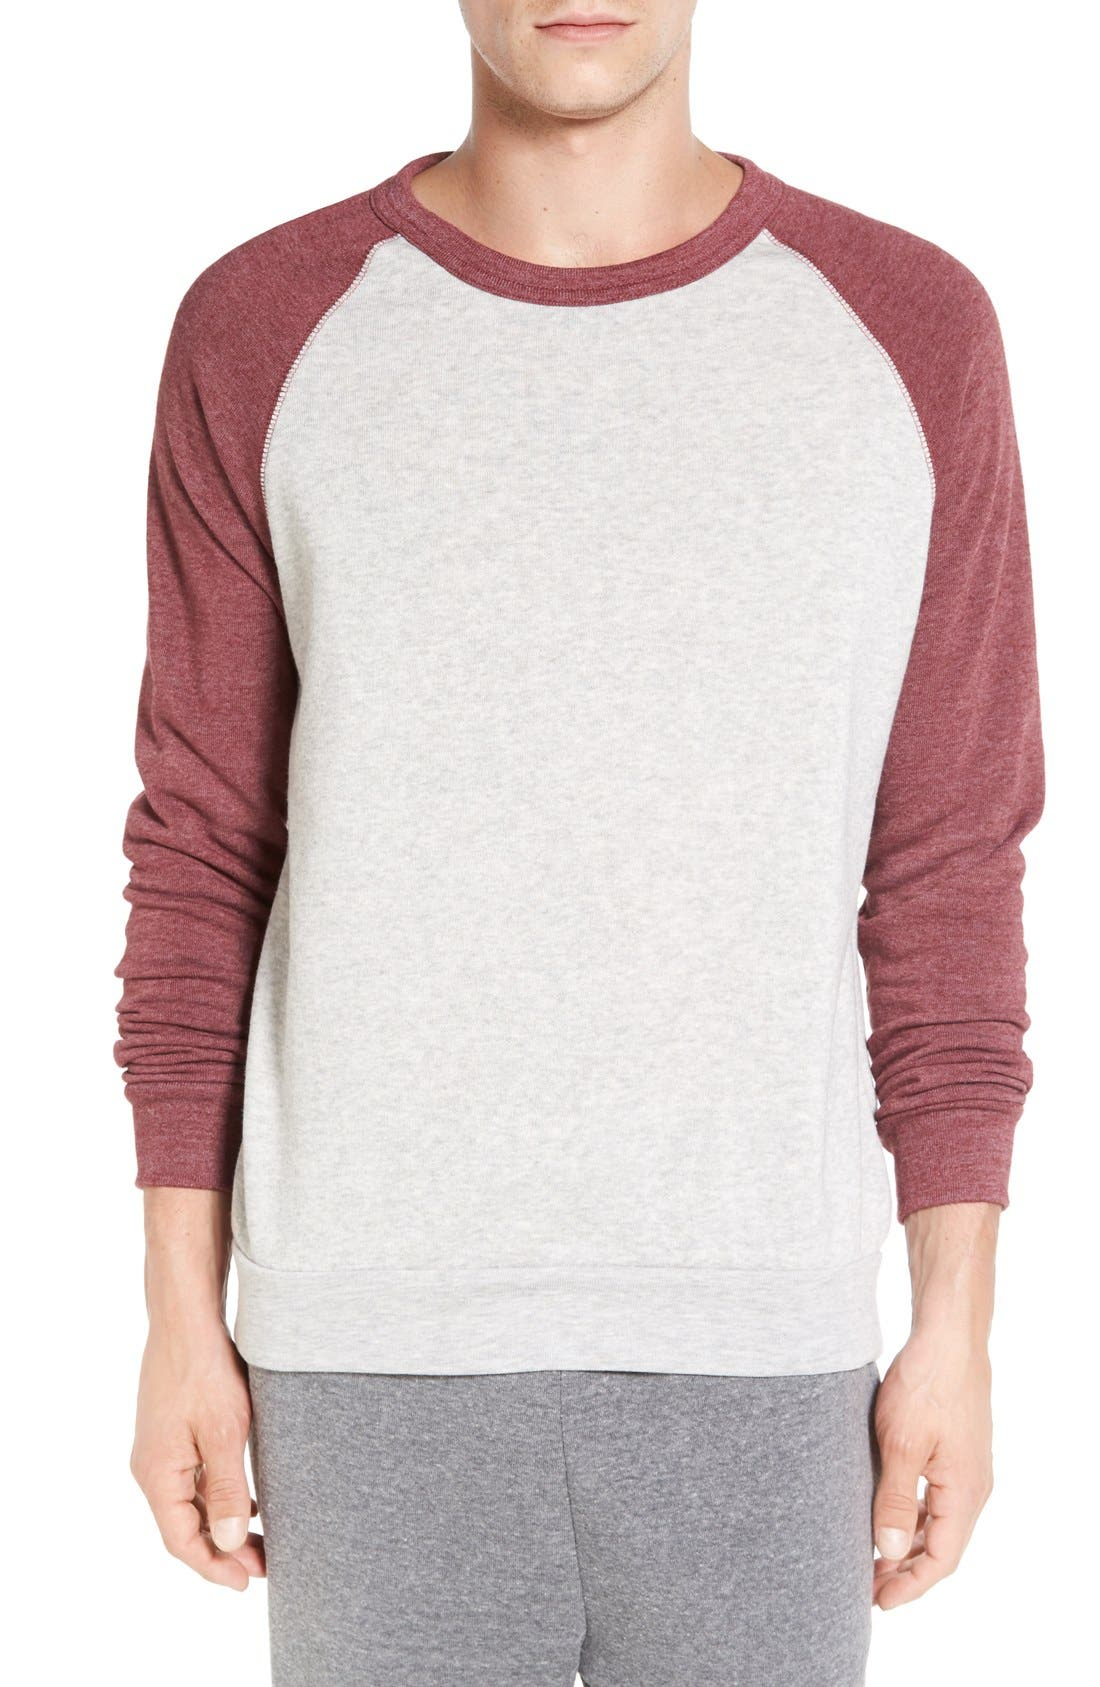 Main Image - Alternative 'The Champ' Trim Fit Colorblock Sweatshirt